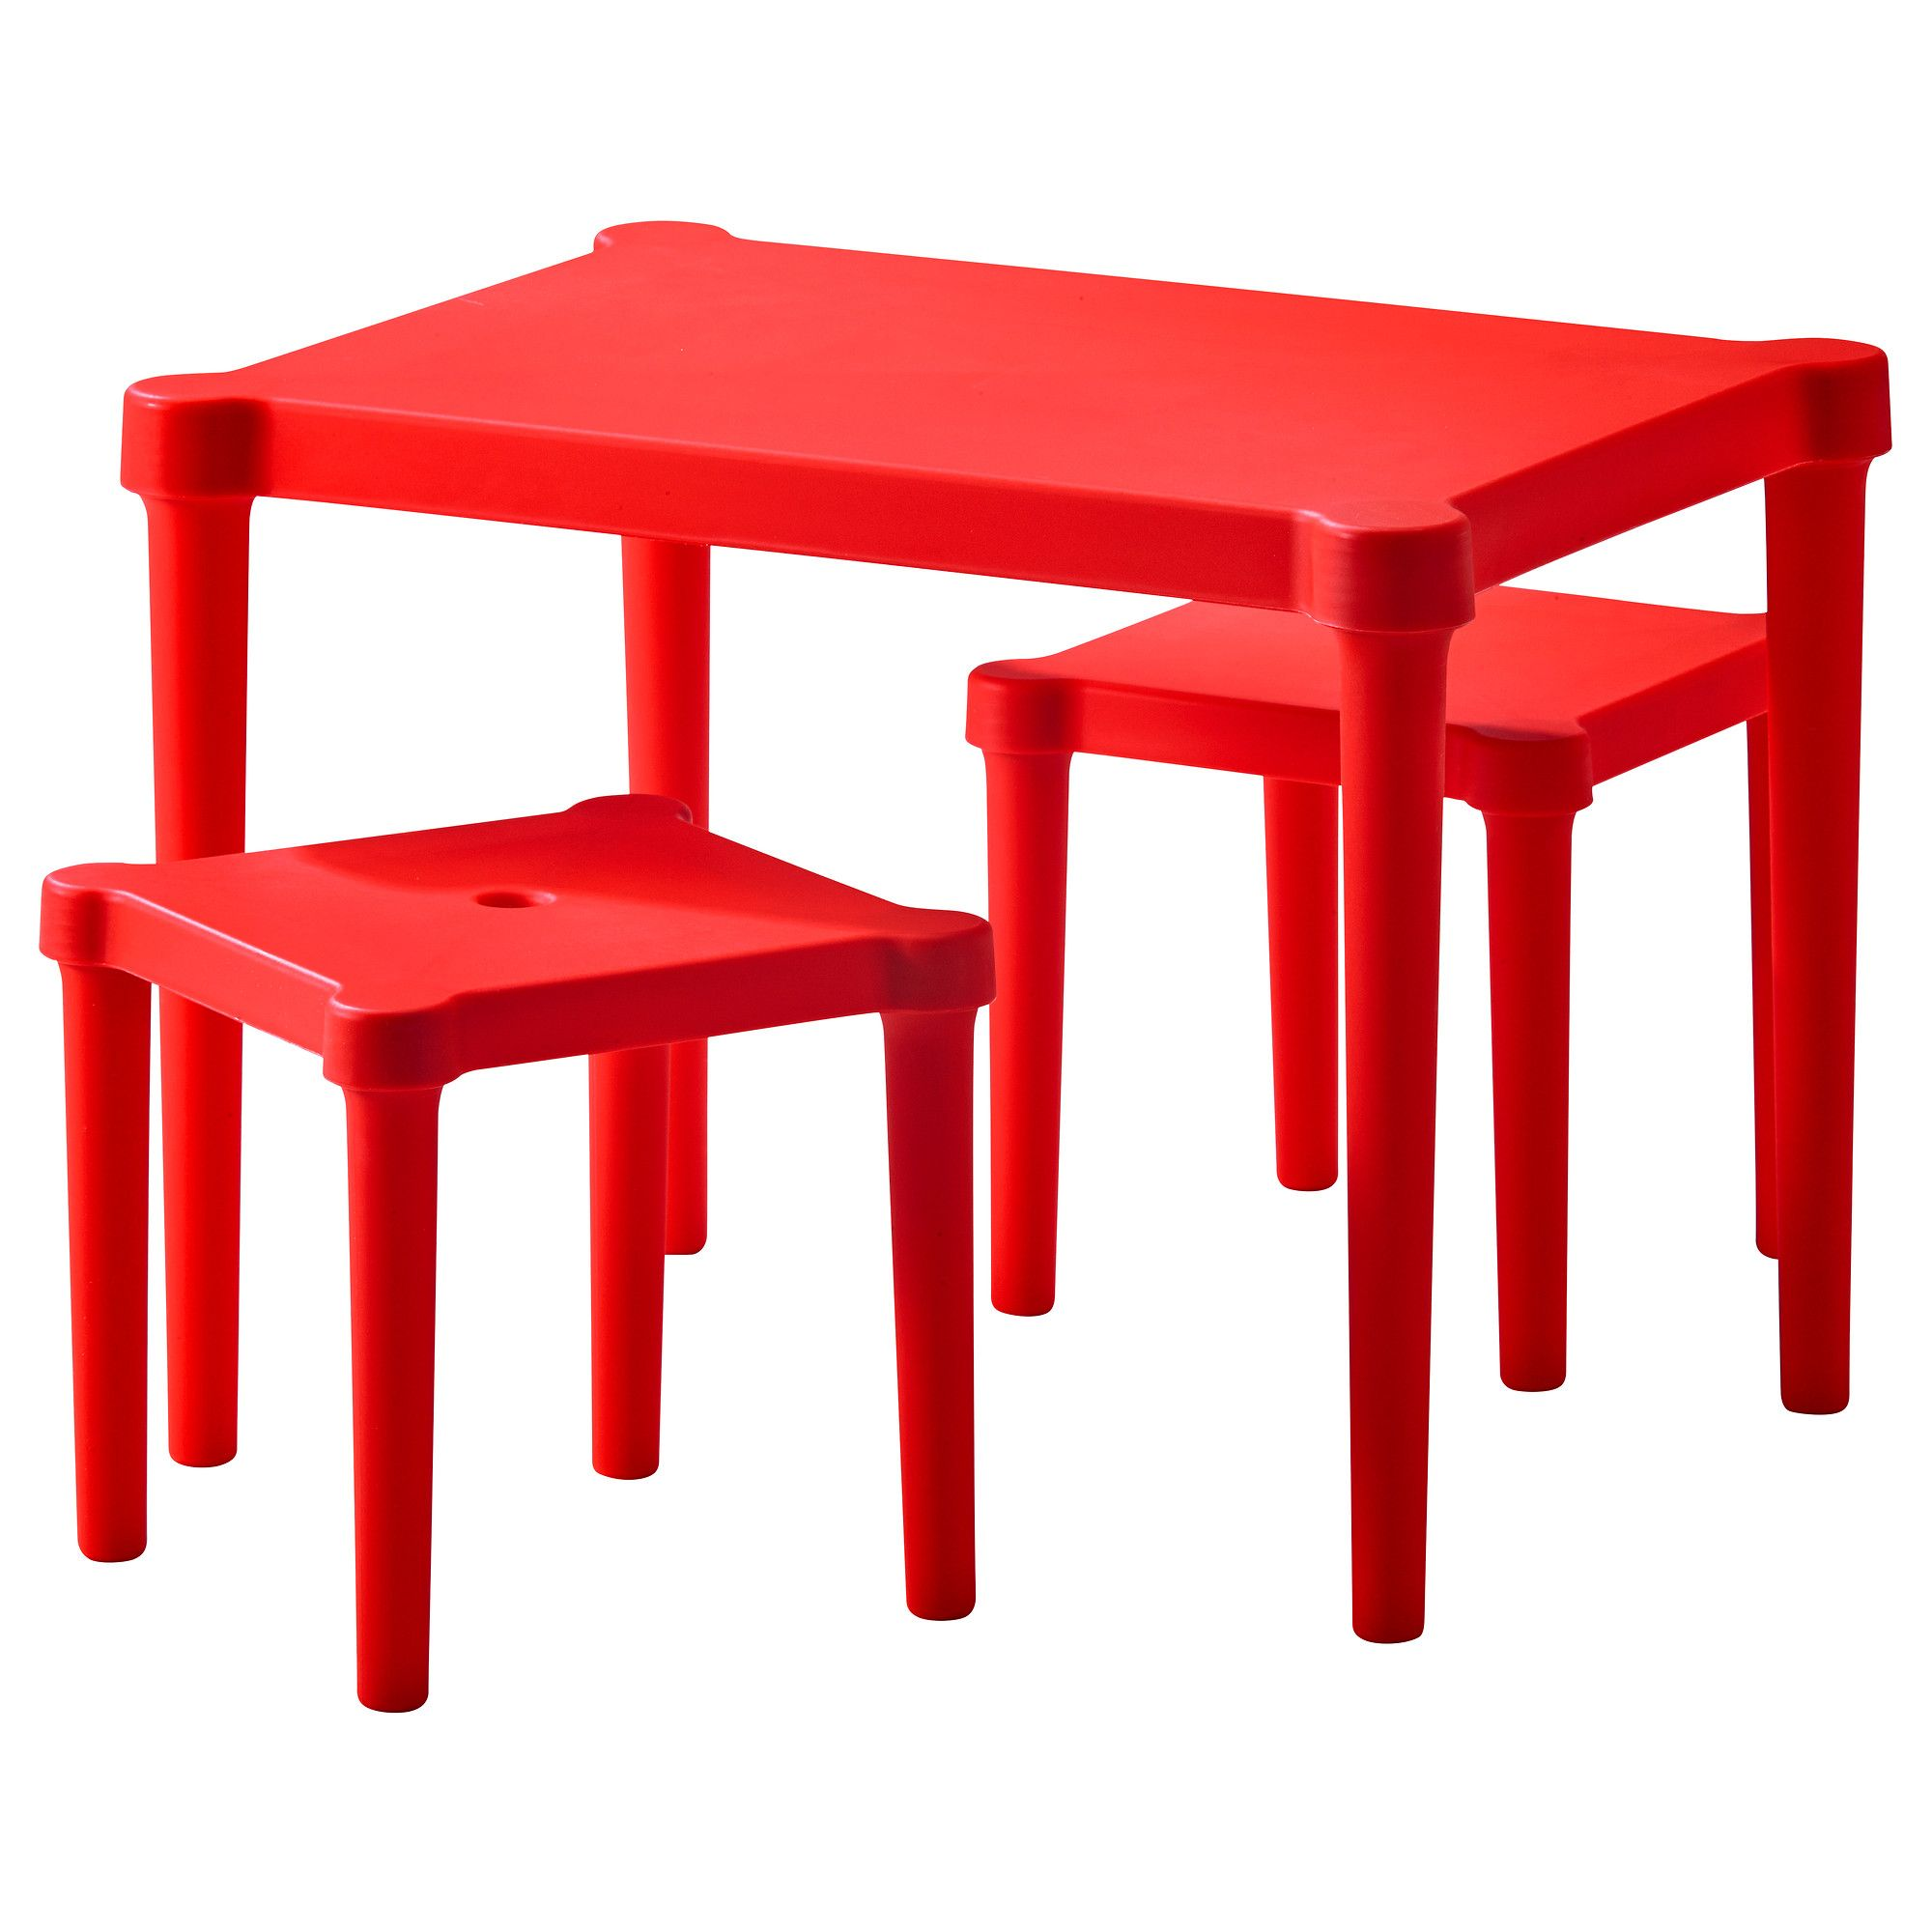 Ikea Childrens Chair 2 Outdoor Chairs For Front Porch Love This Red Children S Table With Stools From Perfect To Tuck Under His New Loft Bed Only 14